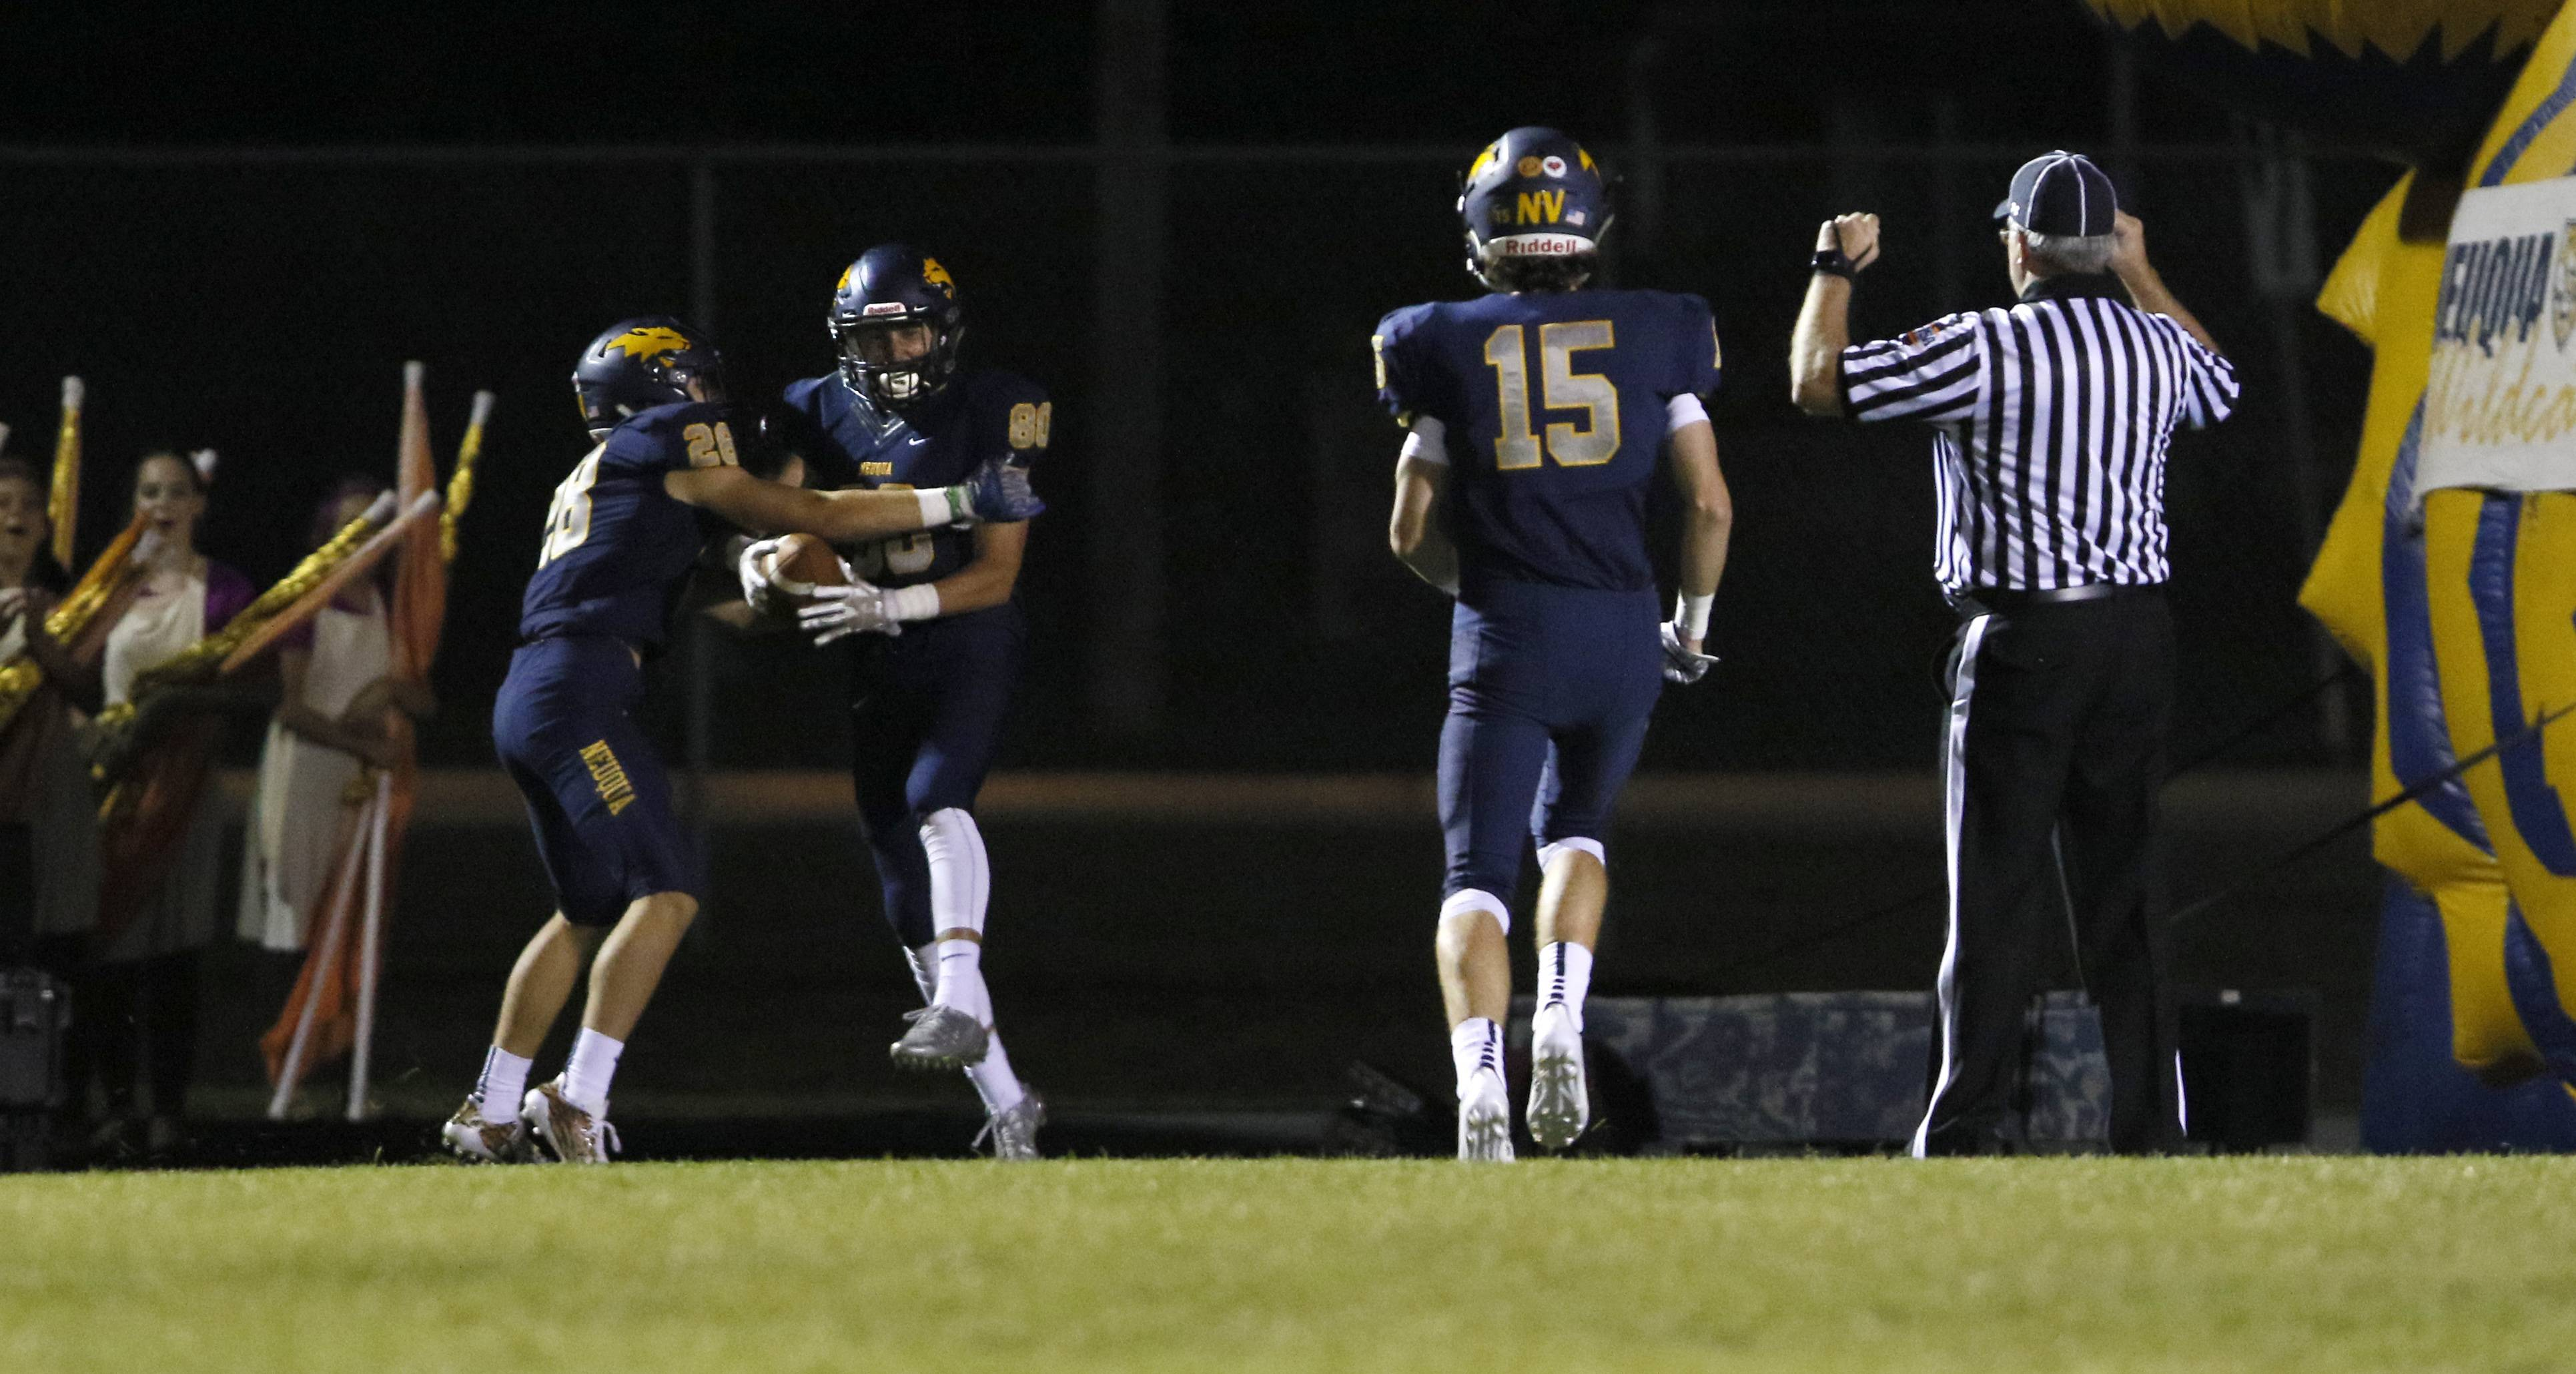 Daniel White/dwhite@dailyherald.comNeuqua Valley's Patrick Hoffman (80) is congratulated by Sean Larkin (28) after scoring on an 88-yard pass play for a 16-0 lead late in the second quarter against Waubonsie Valley. At right is Zach Wenz (15).